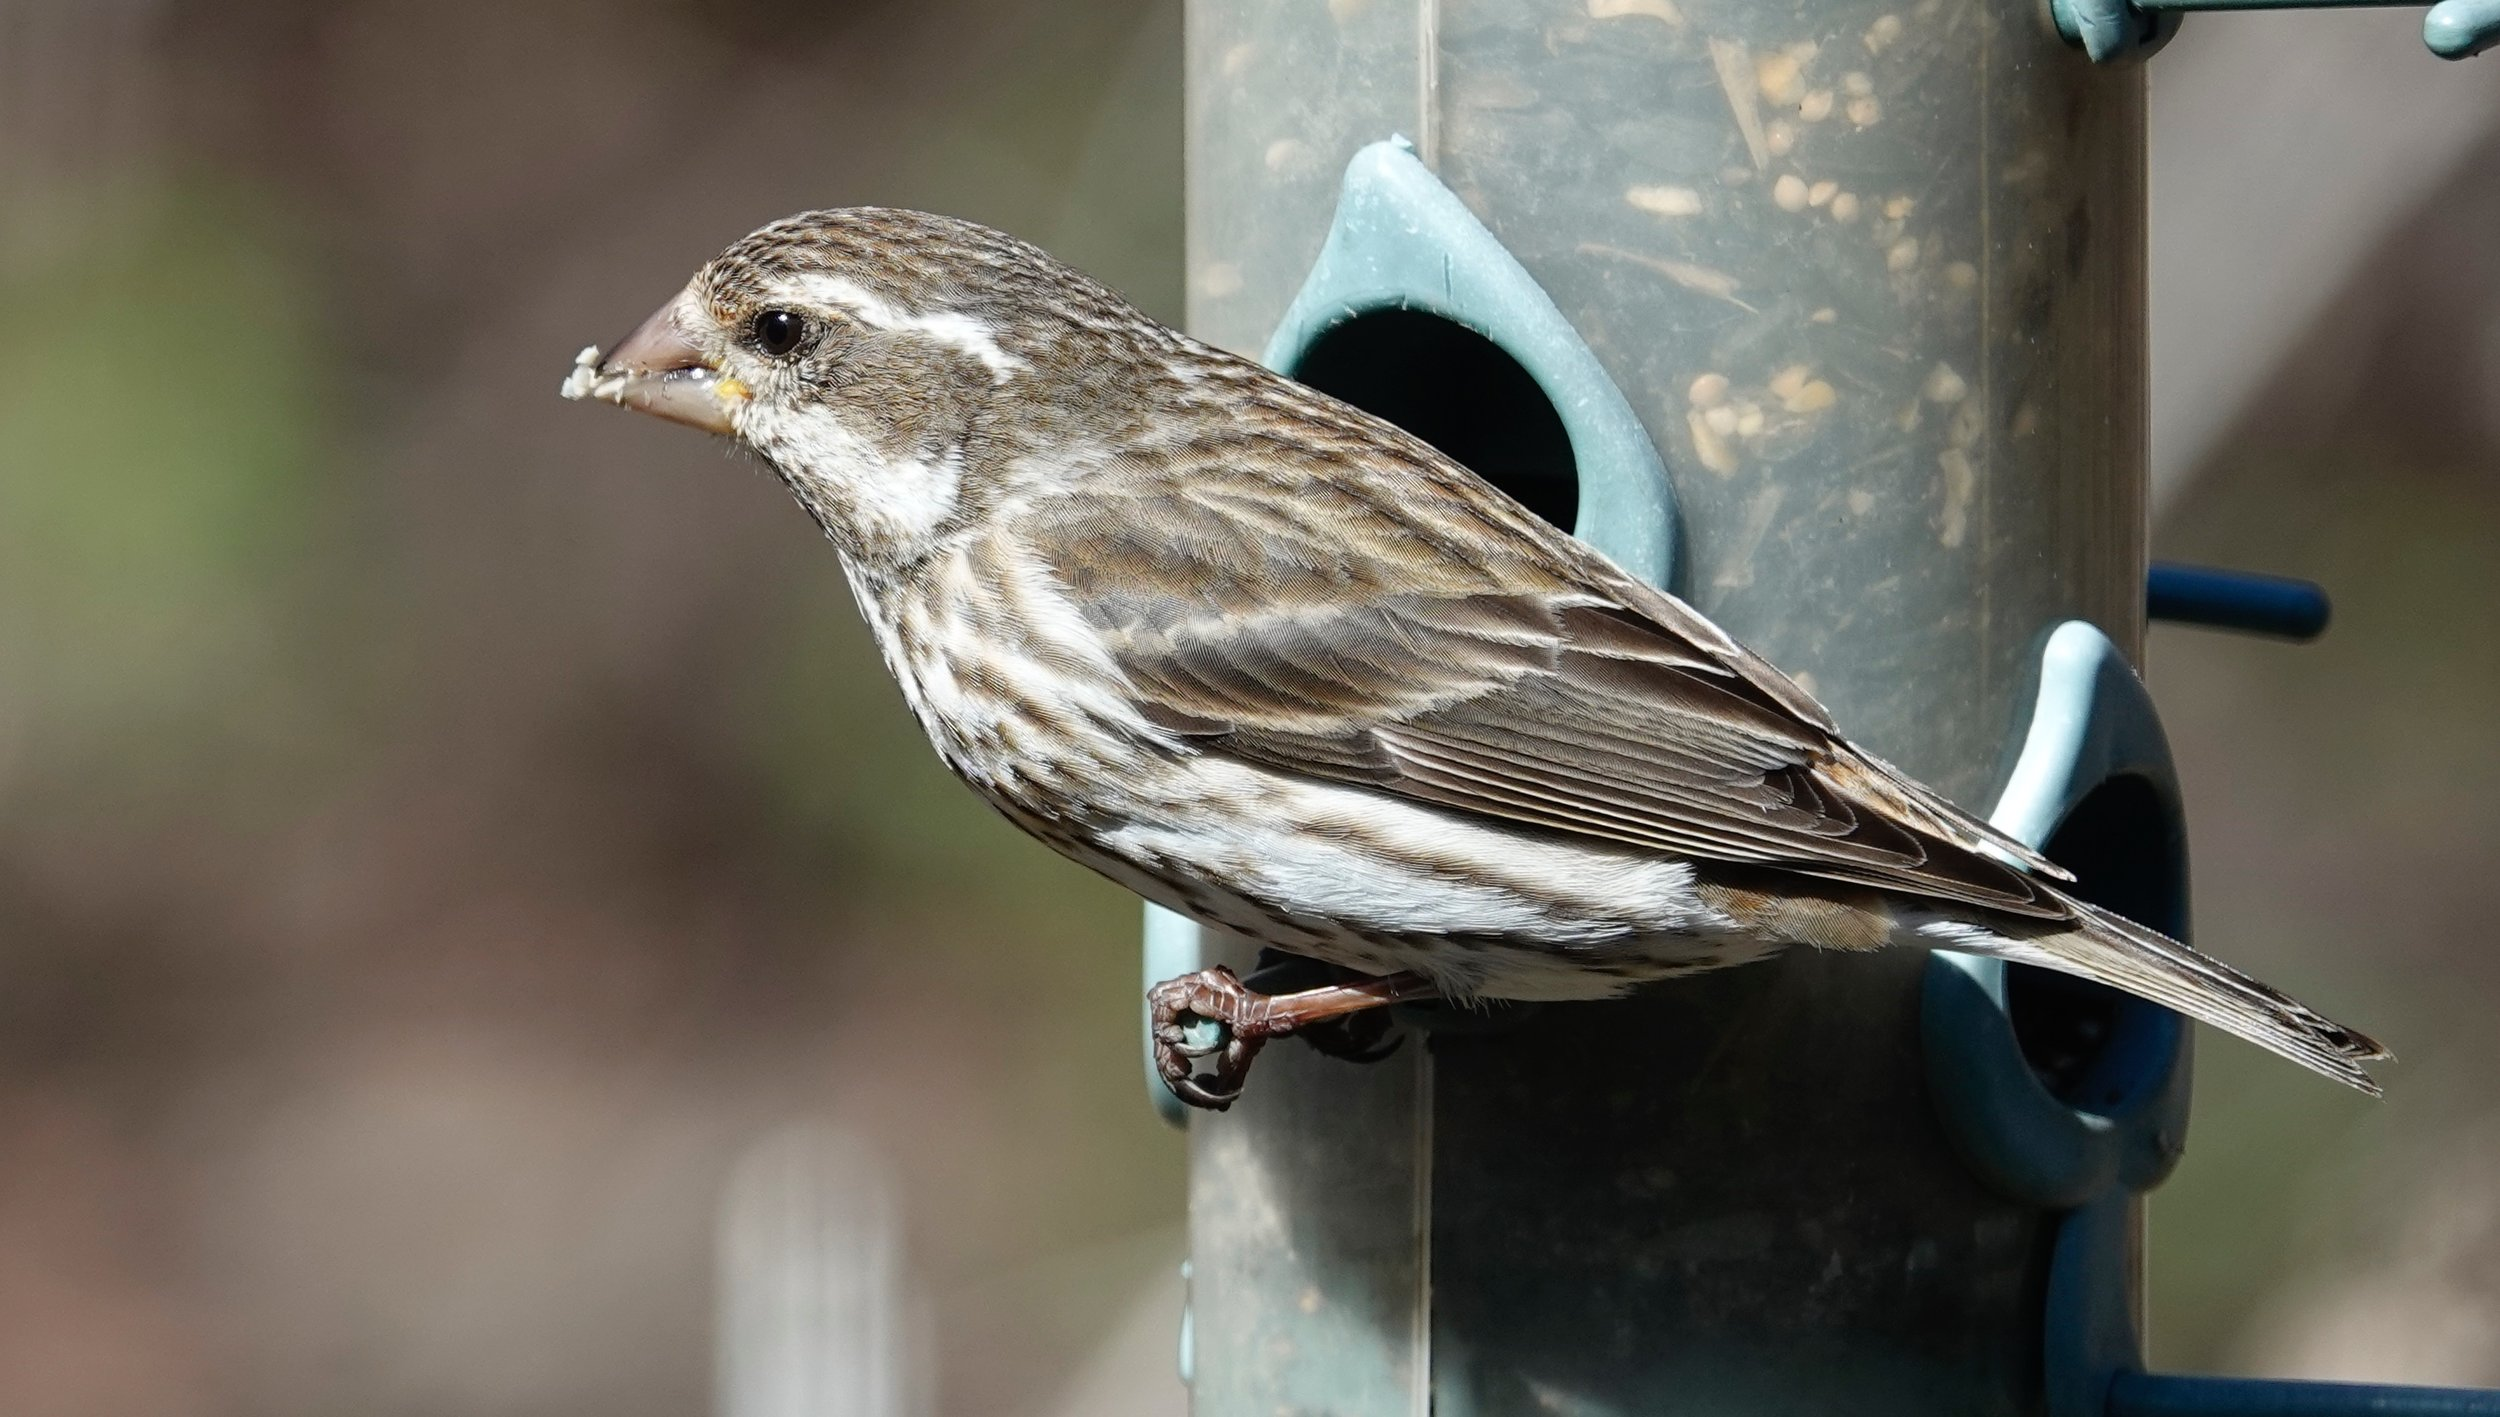 A purple finch female has a bold, white eyebrow stripe that is lacking on a female house finch.